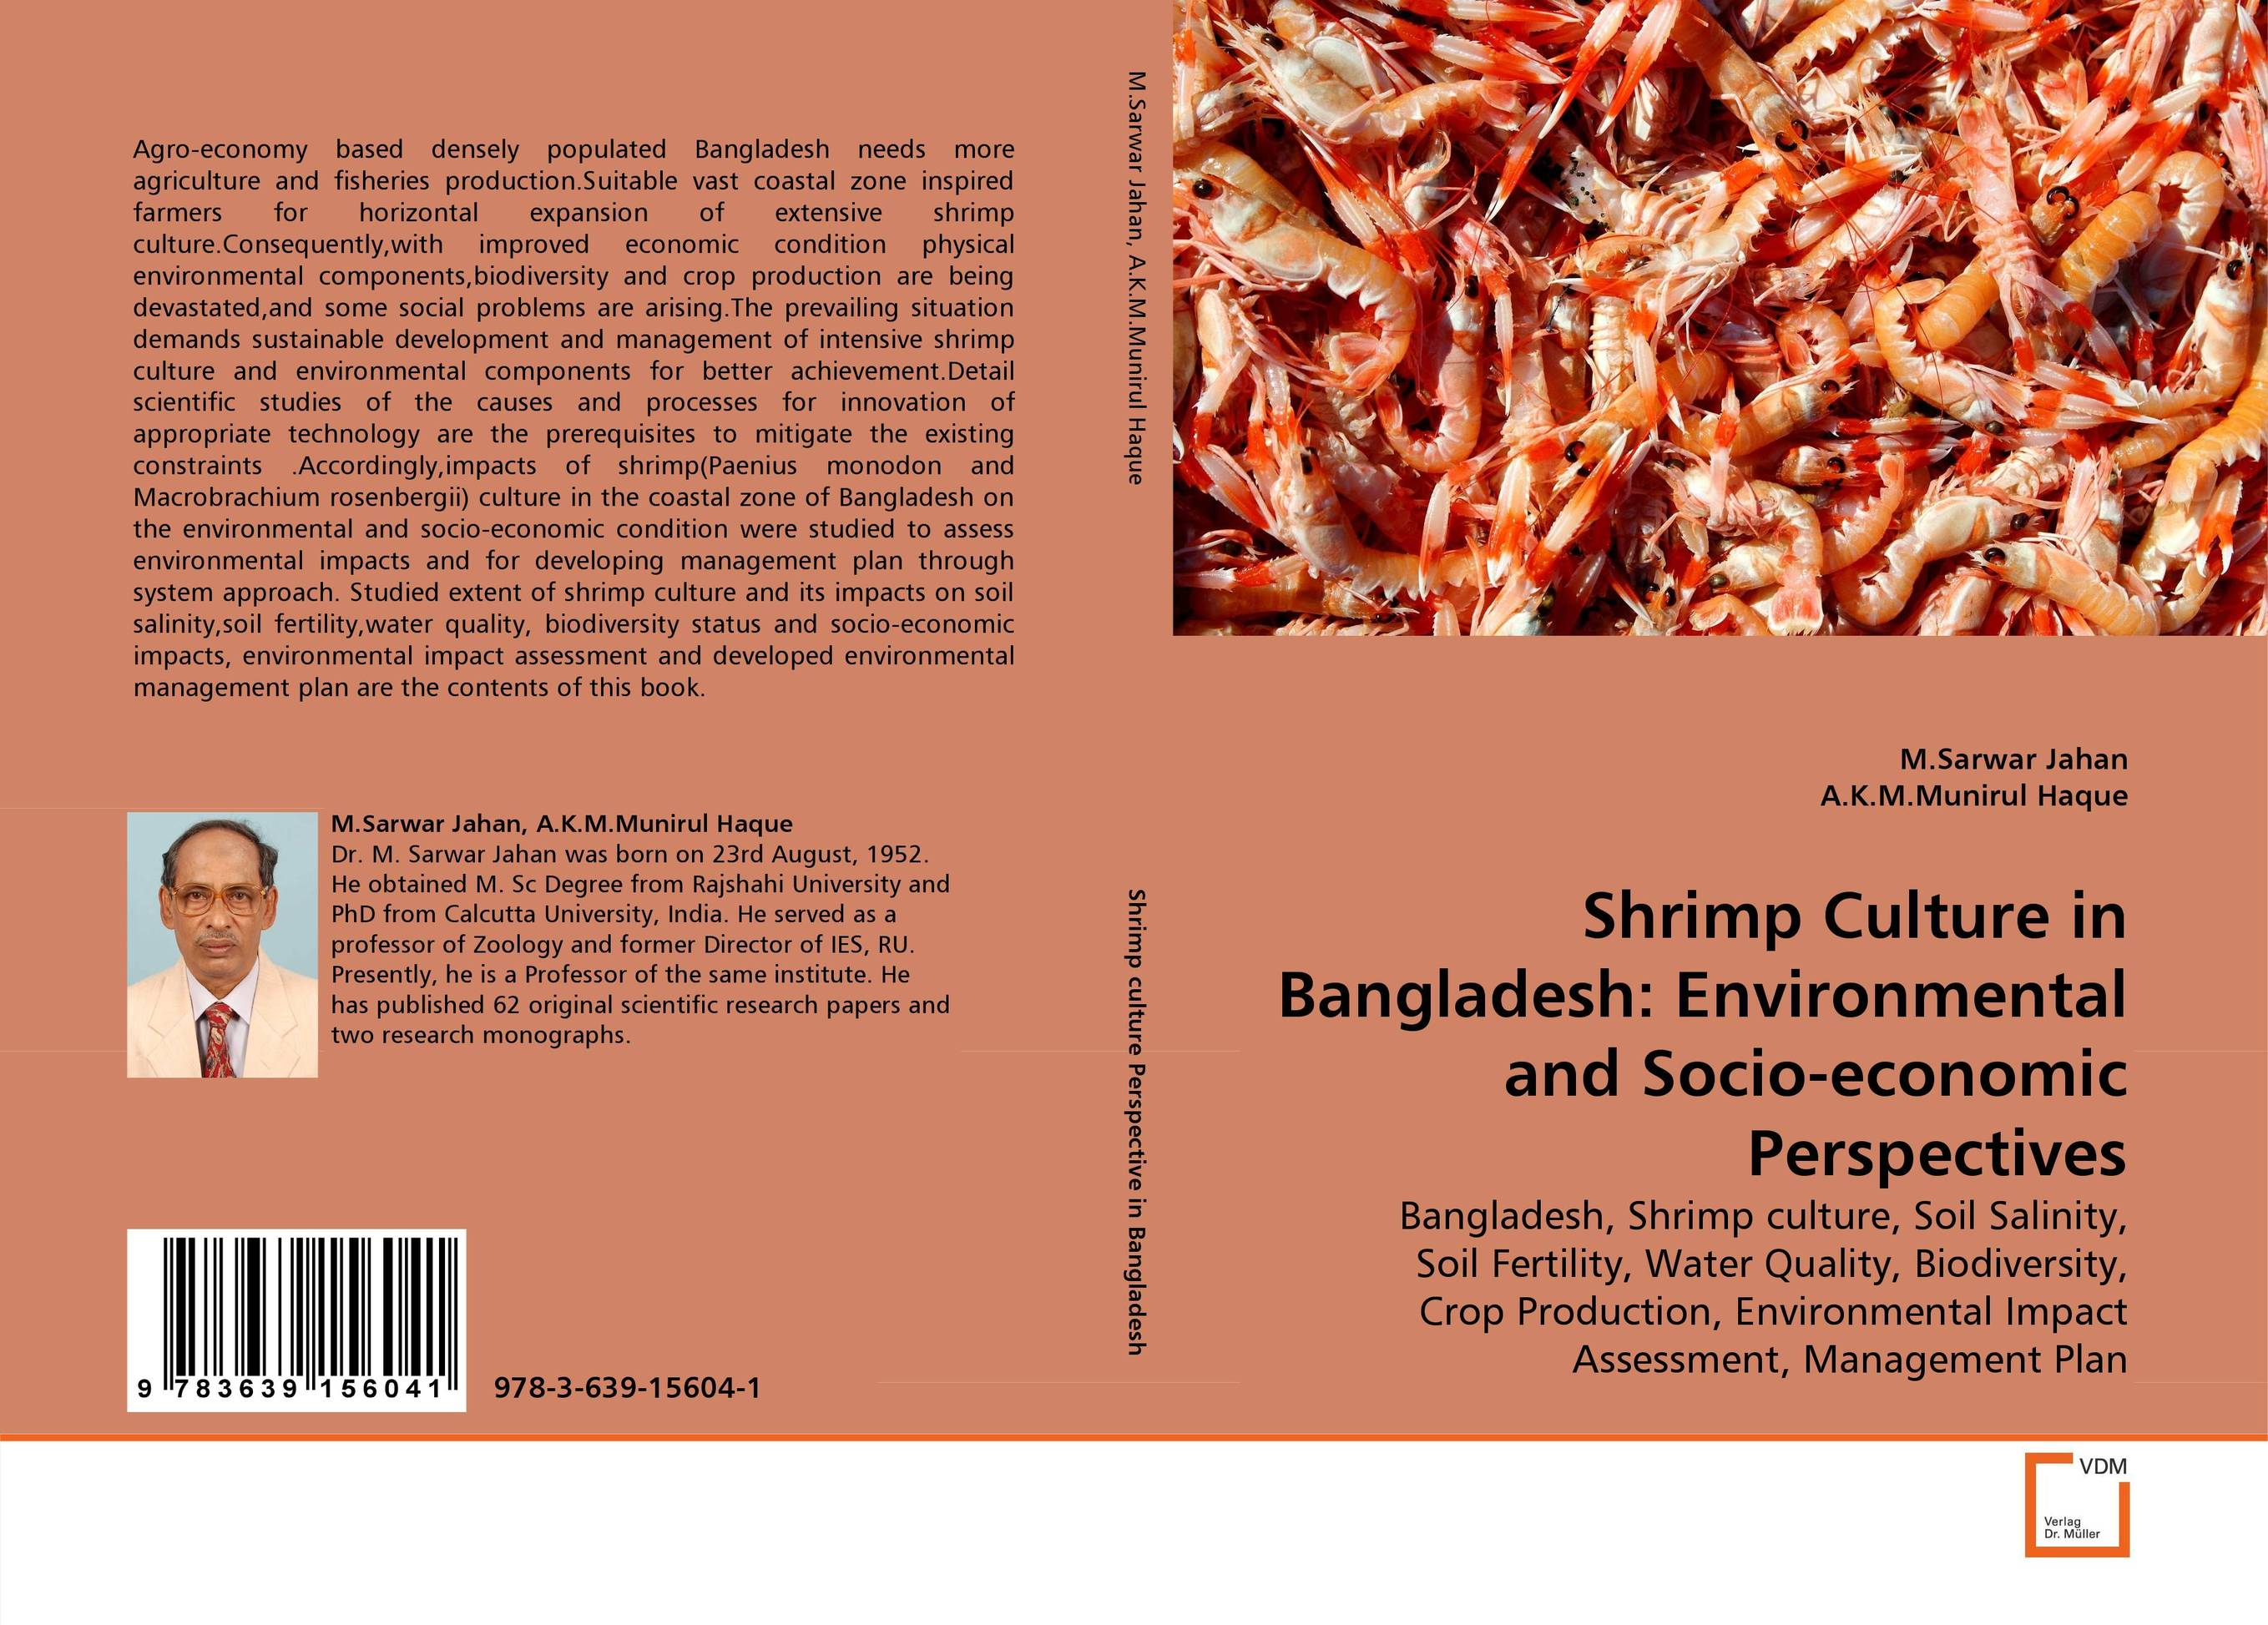 Shrimp Culture in Bangladesh: Environmental and Socio-economic Perspectives joseph omagwa socio economic and demographic factors impacts on fertility in nairobi